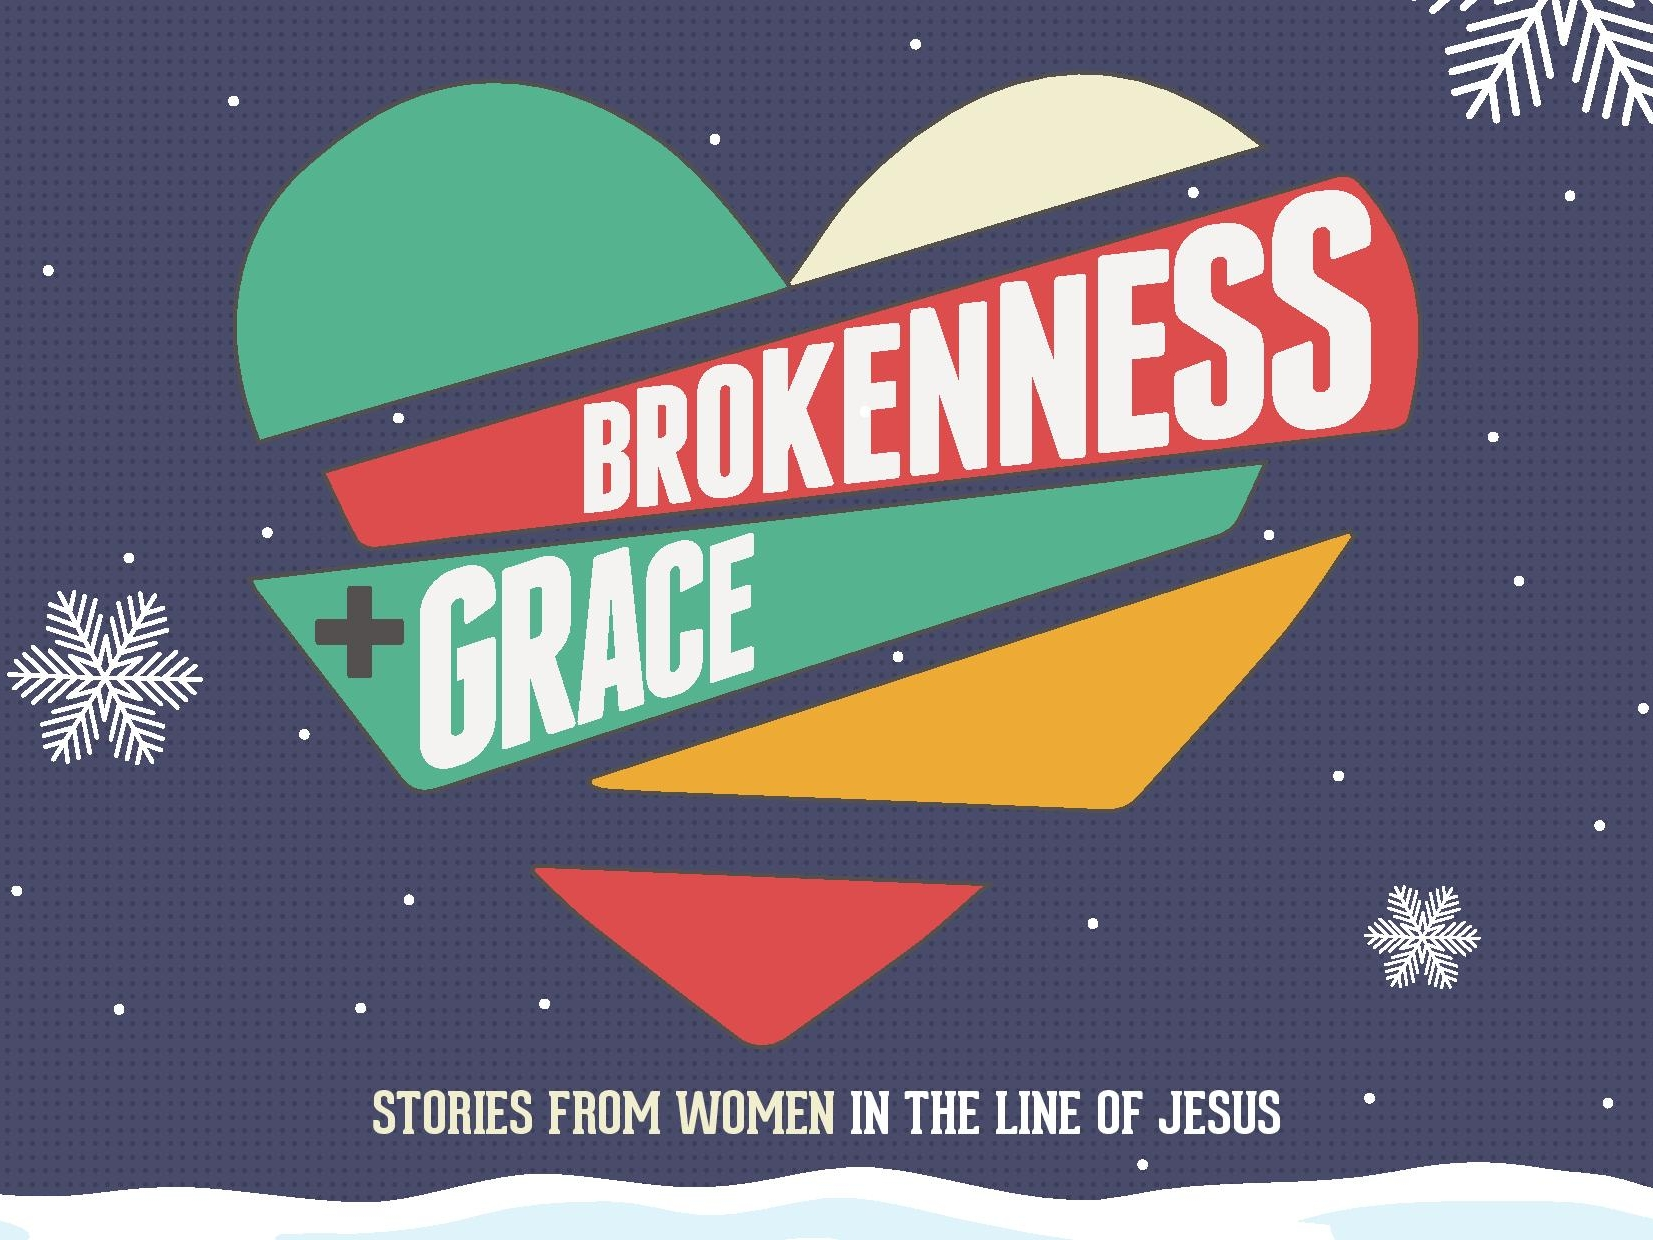 Stories from women in the line of Jesus